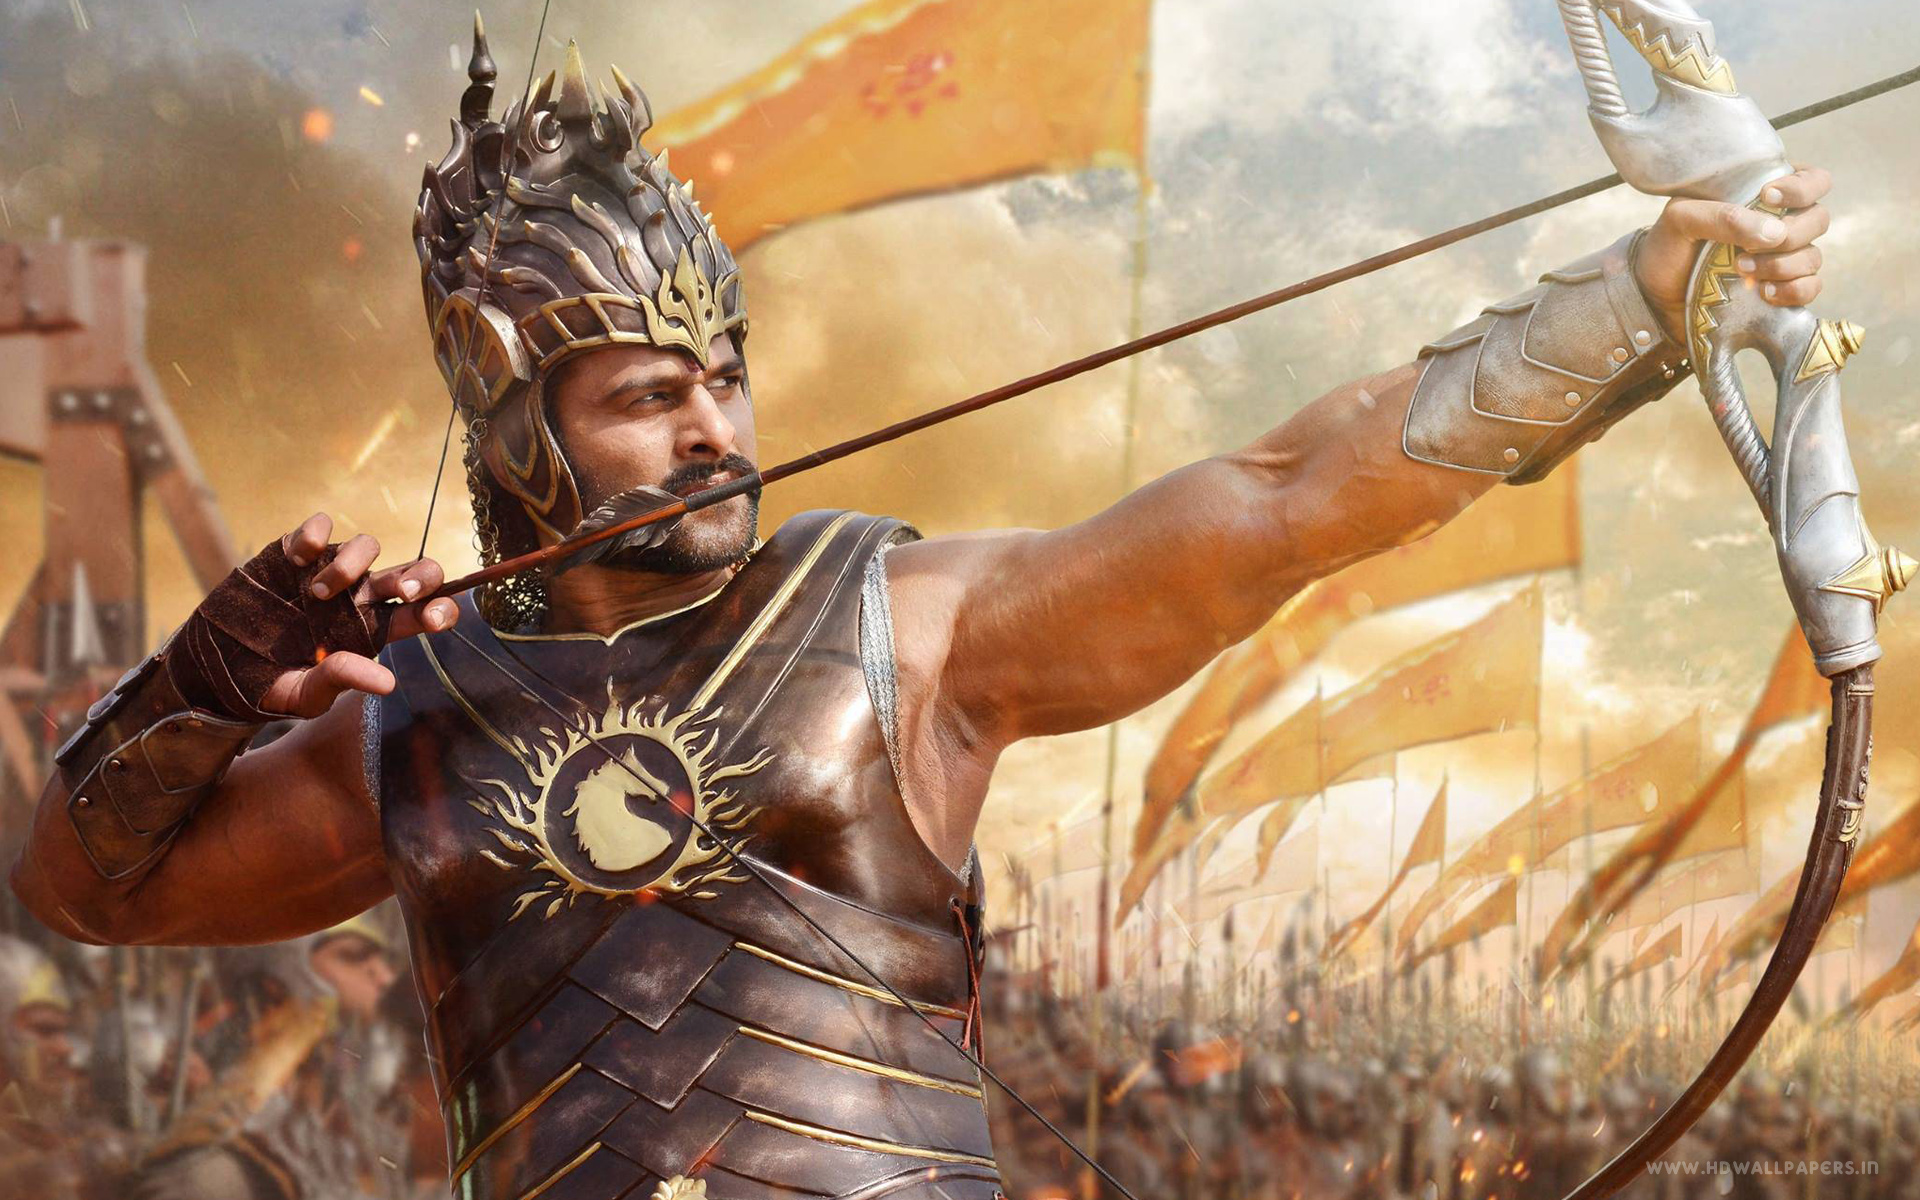 Best Actor Prabhas Hd Wallpaper: Prabhas Wallpapers, Photos And Desktop Backgrounds Up To